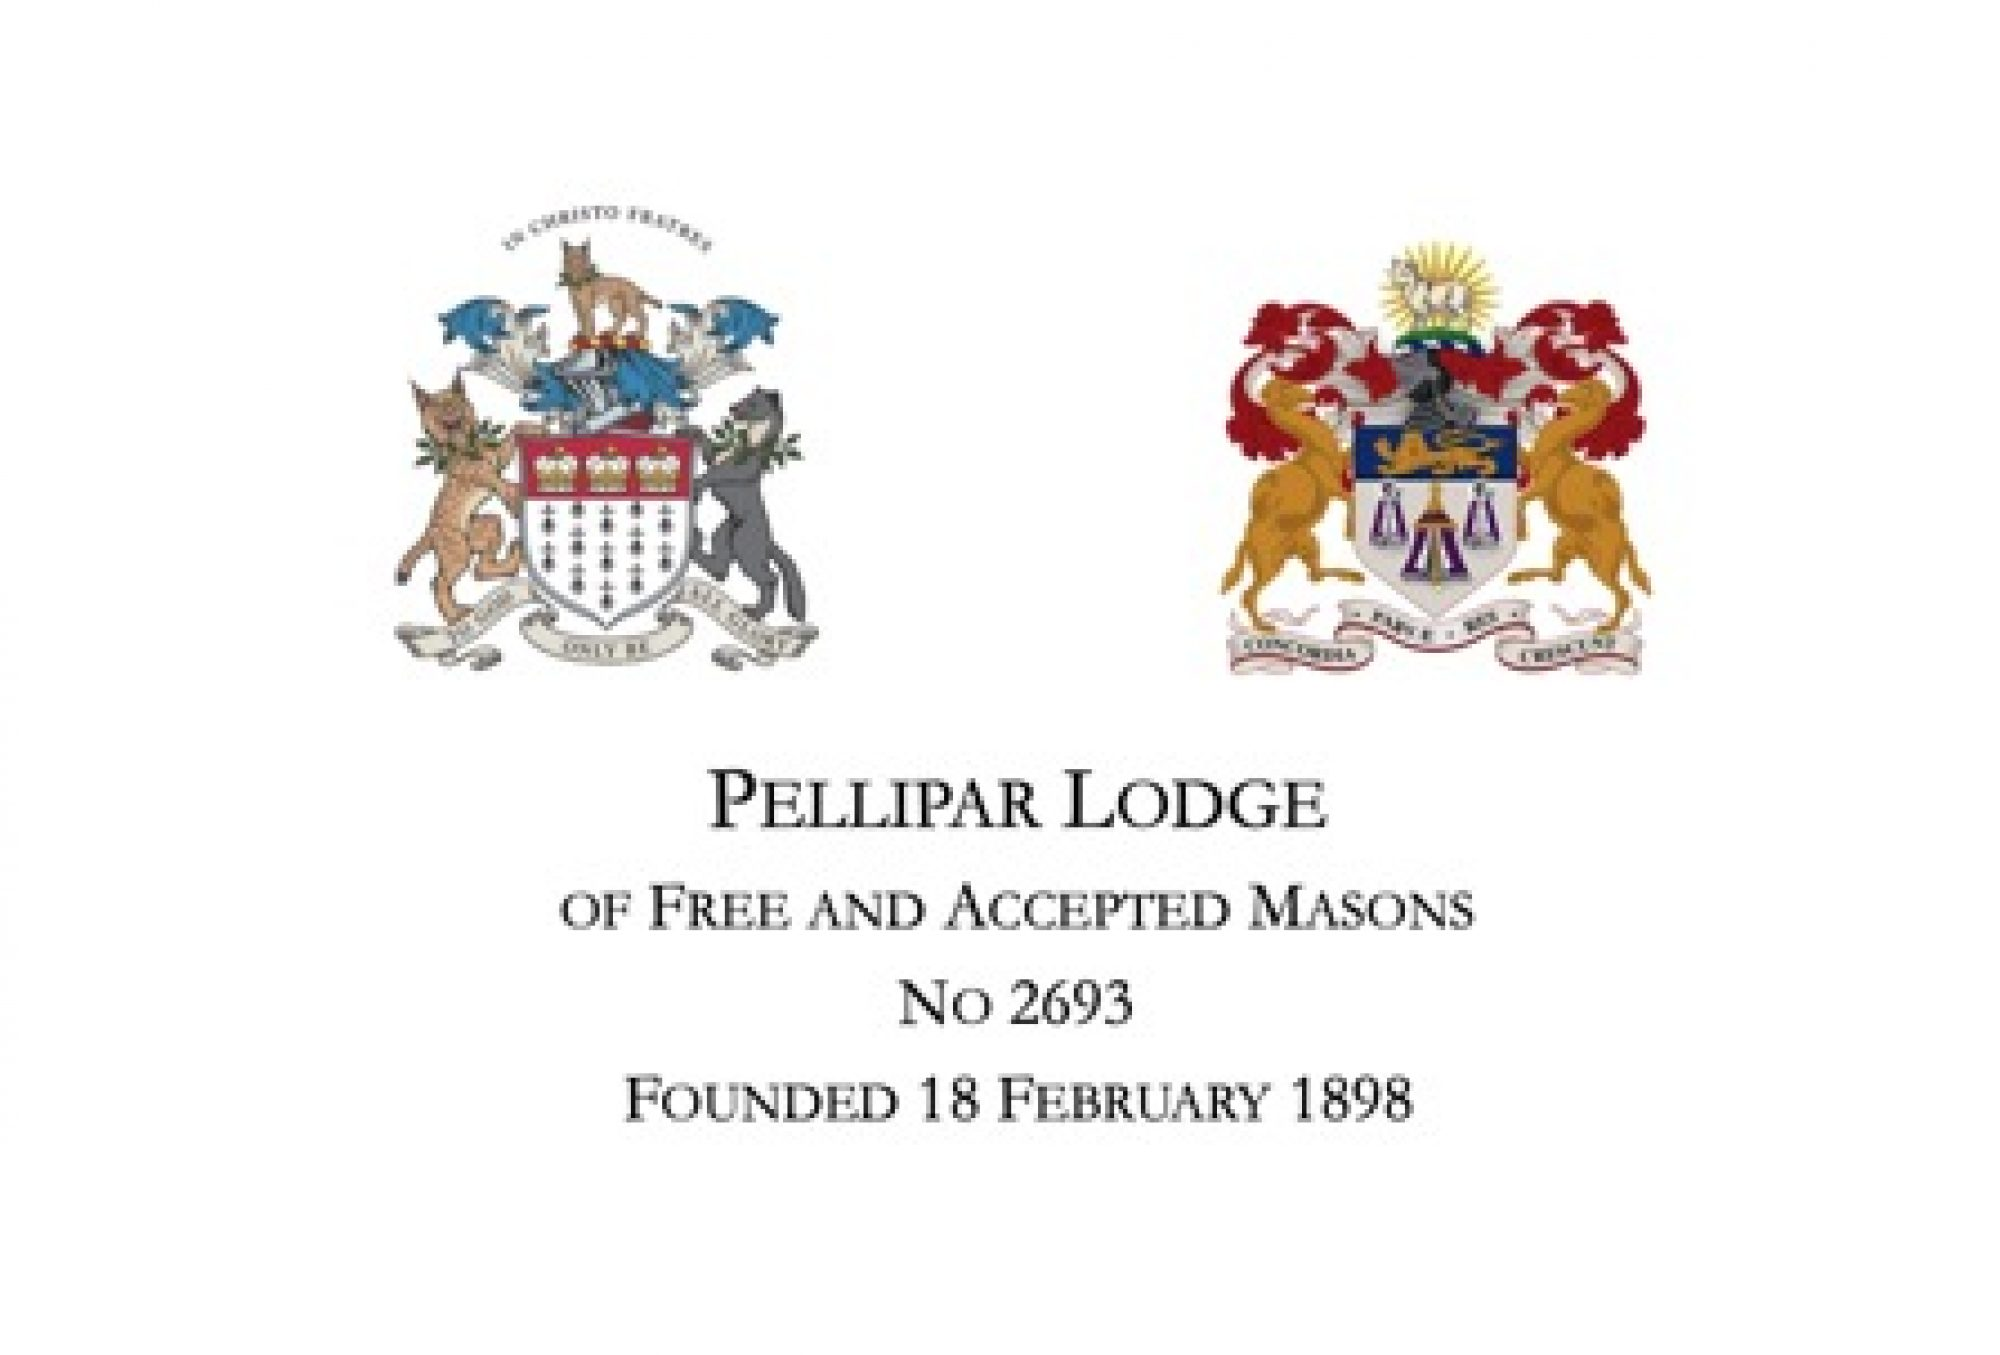 Pellipar Lodge No 2693